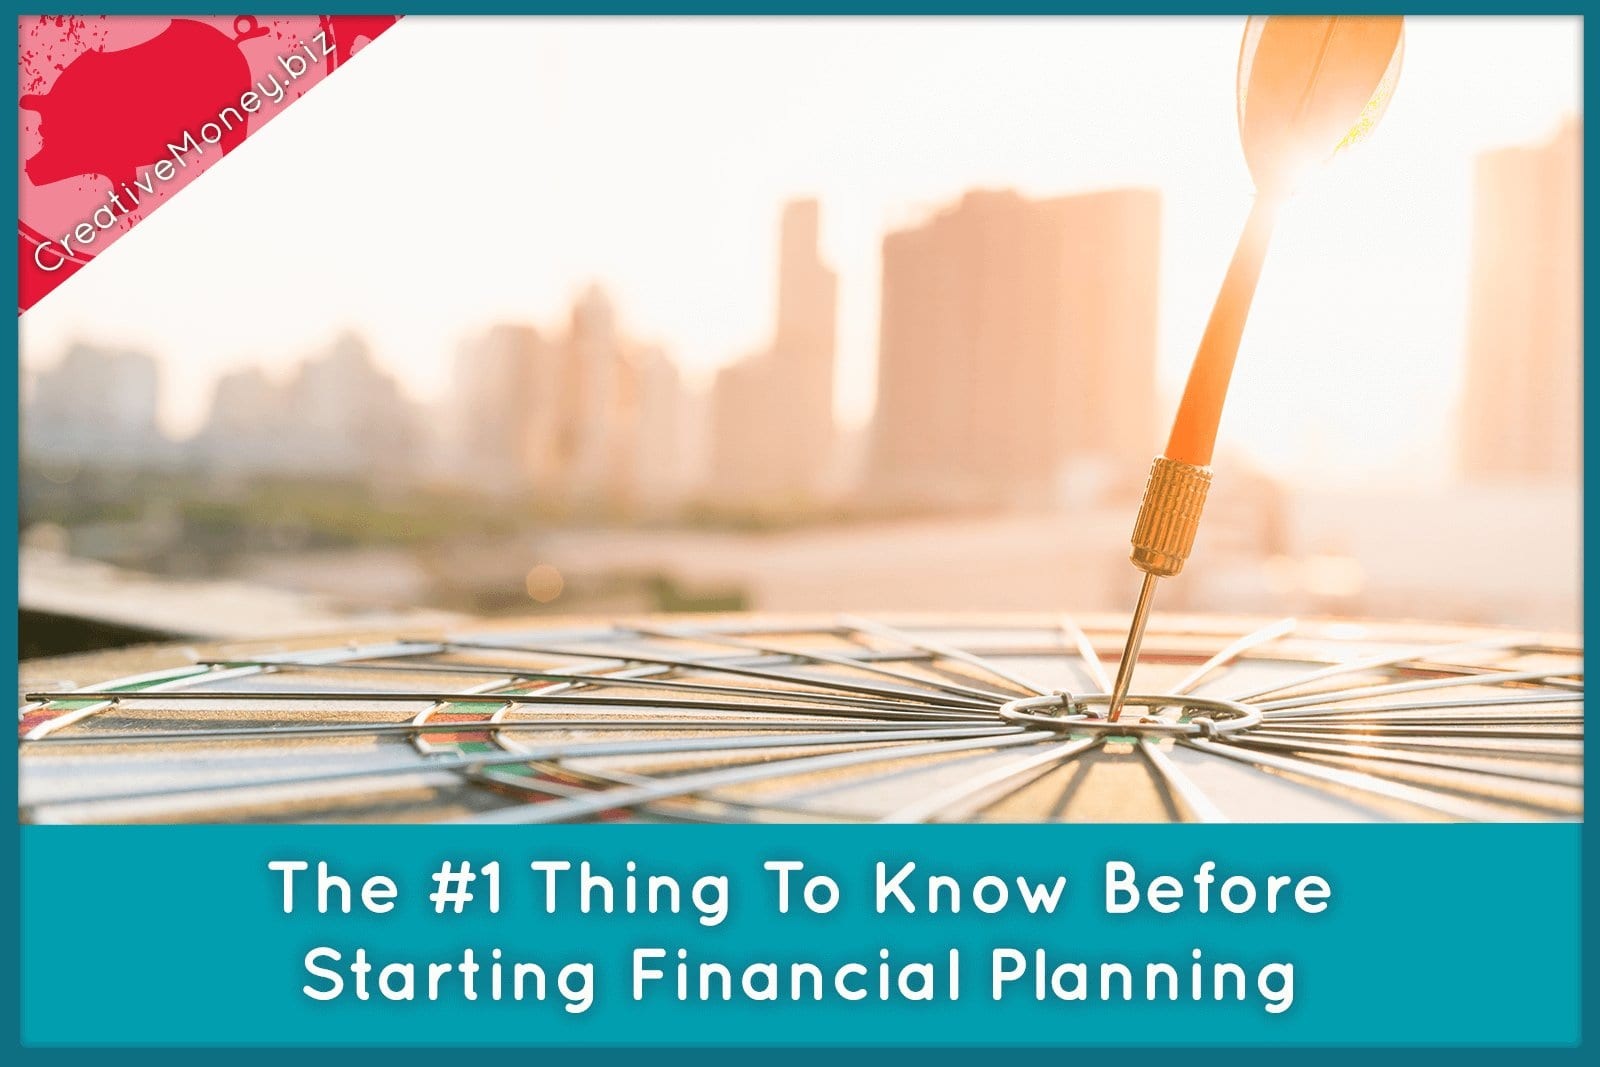 Don't Start Financial Planning Unless You Know This One Thing